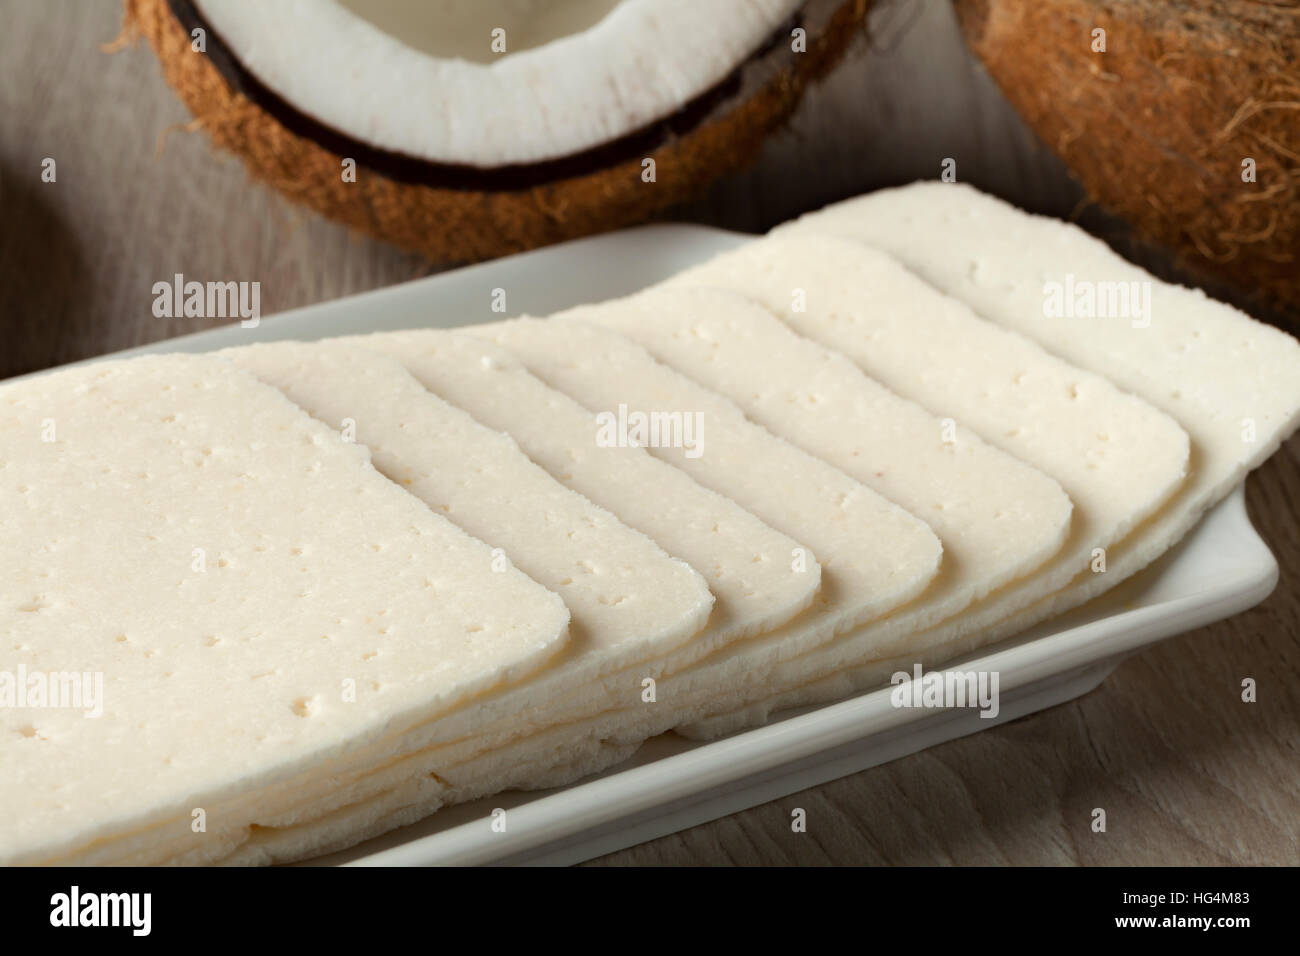 White sliced coconut sandwich filling - Stock Image